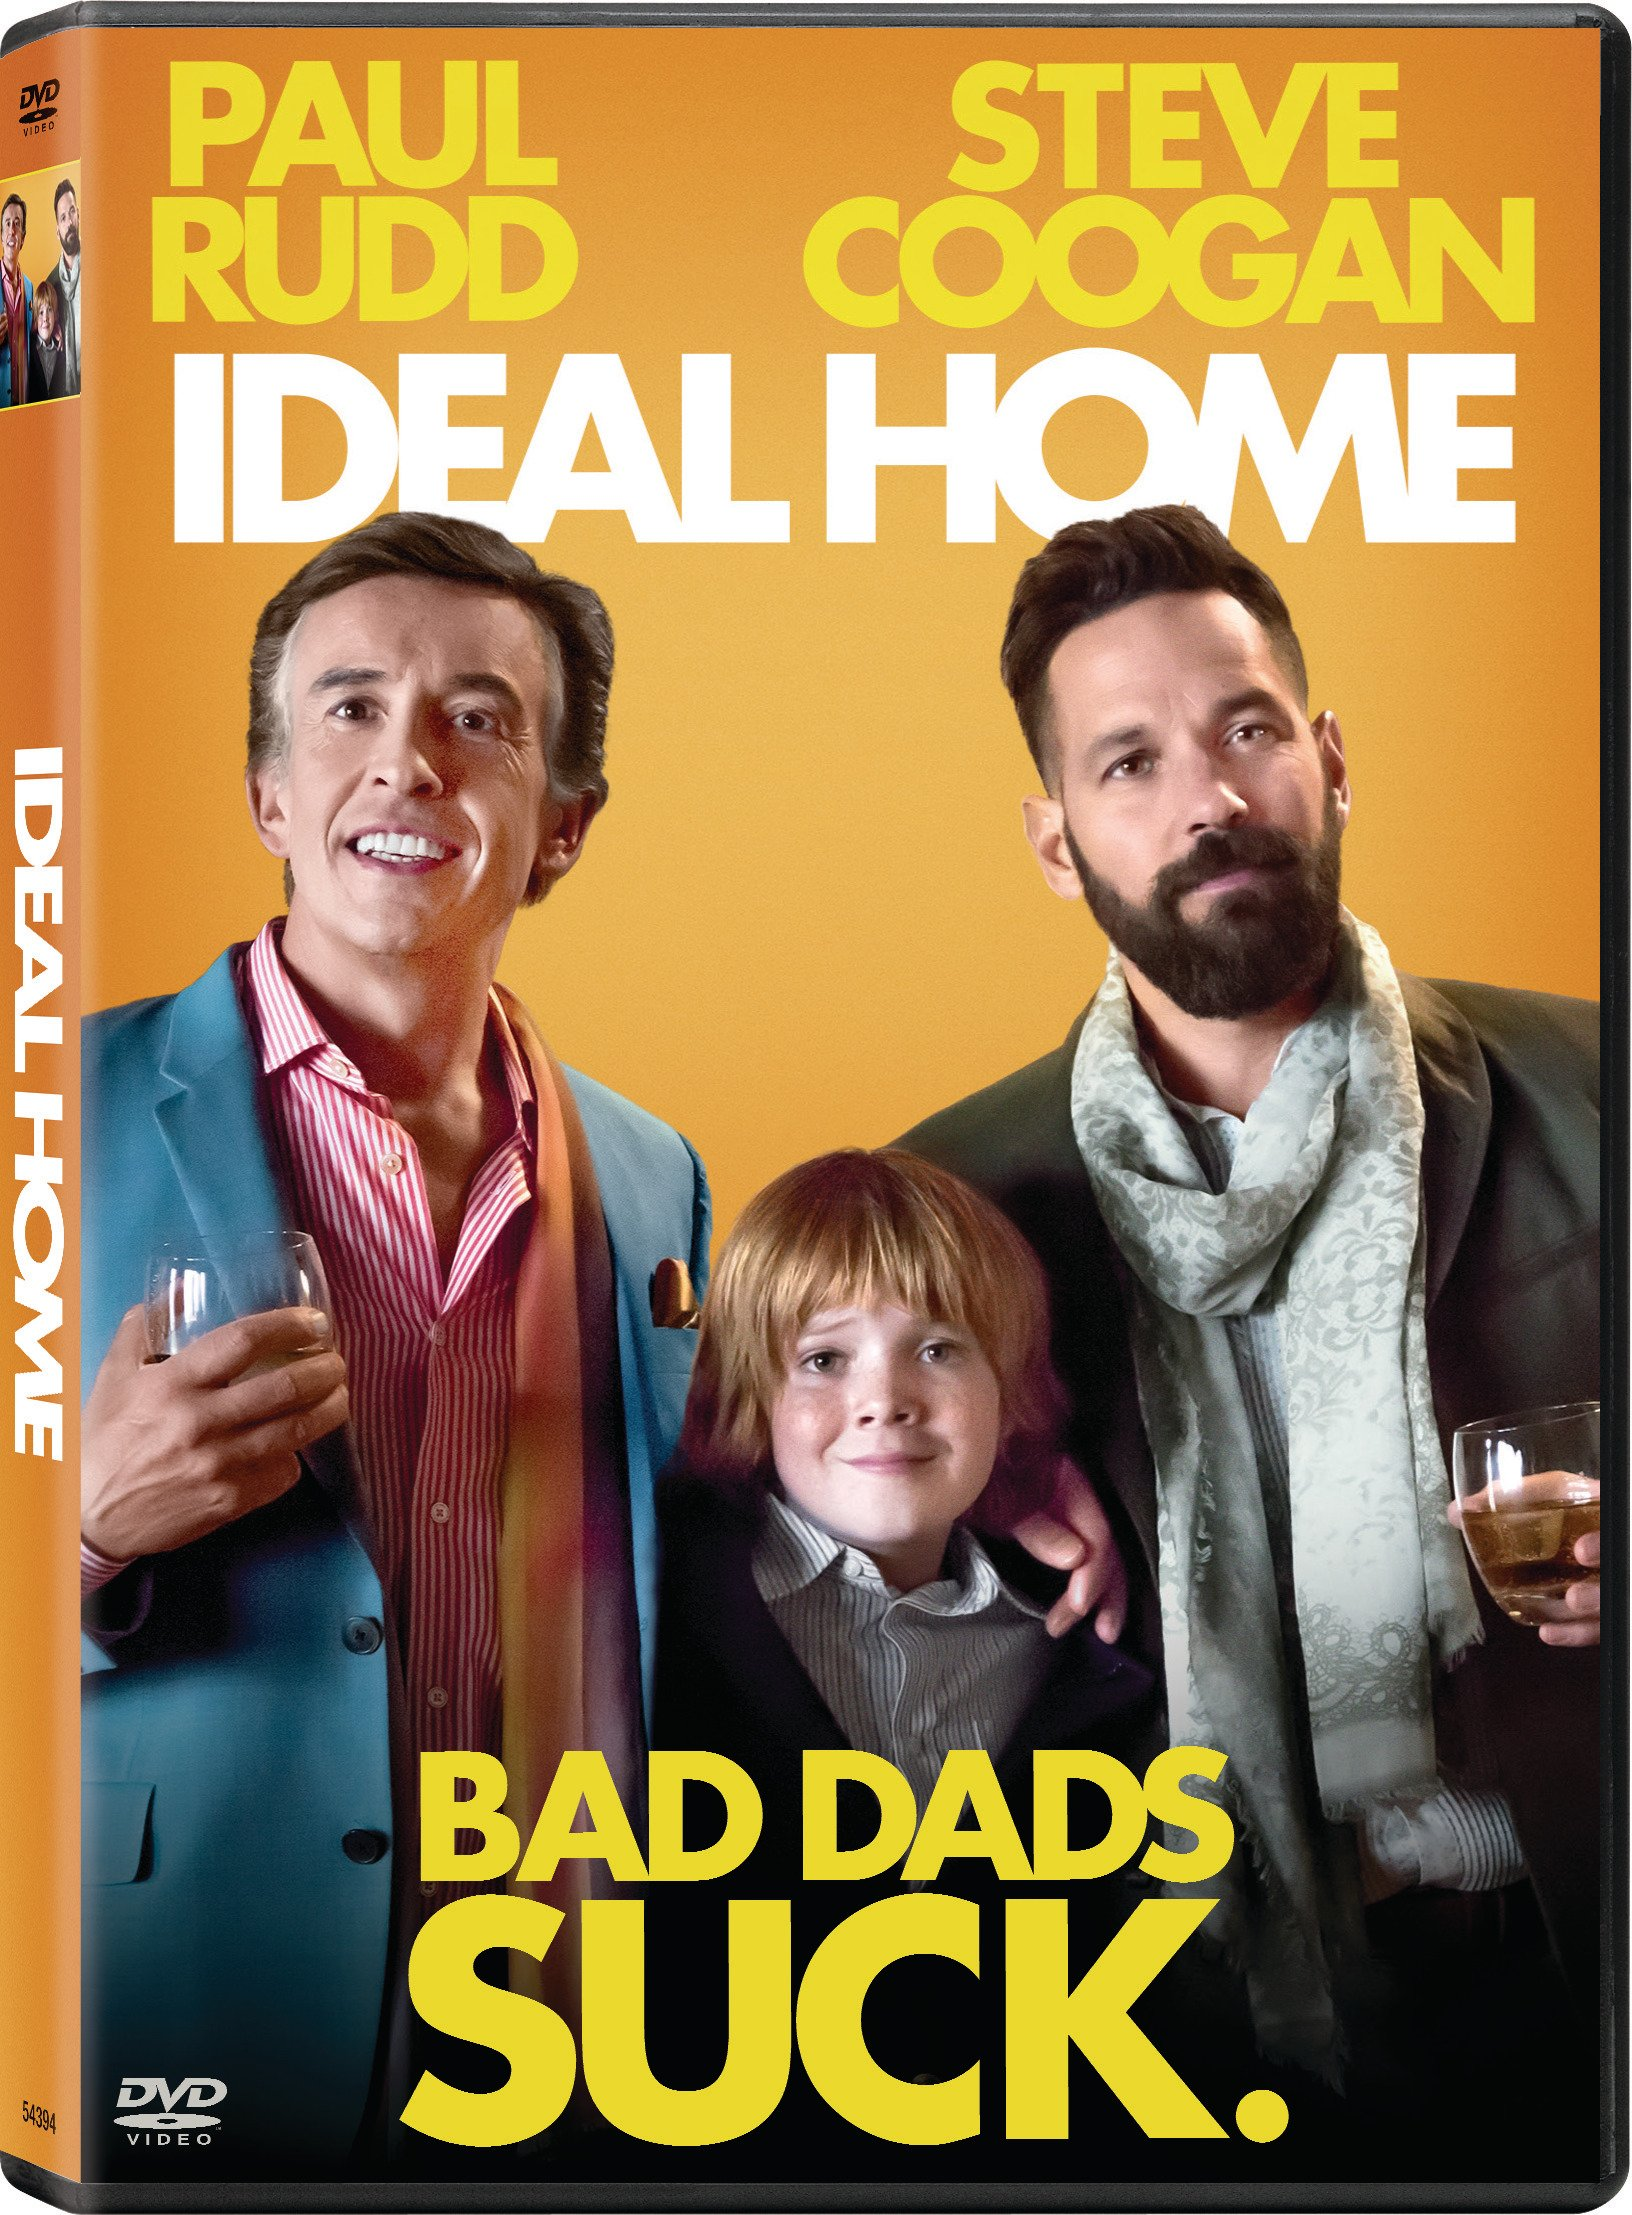 DVD : Ideal Home (AC-3, Subtitled, Widescreen, Dolby)